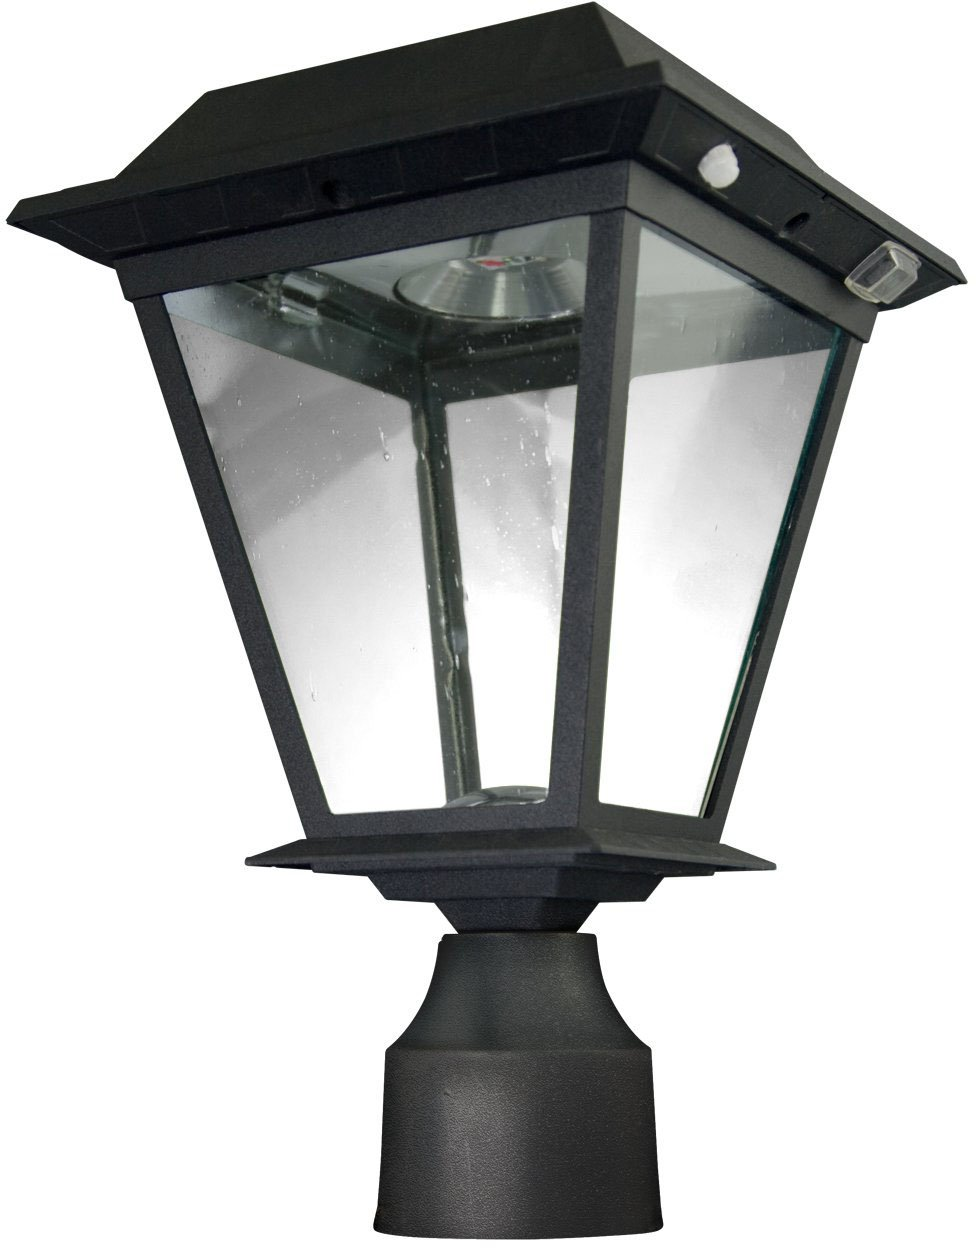 XEPA SPX113 Solar-Powered LED Lantern with Motion Detection Function and 3-Inch Post/ Pole Fitter Mount by XEPA (Image #2)